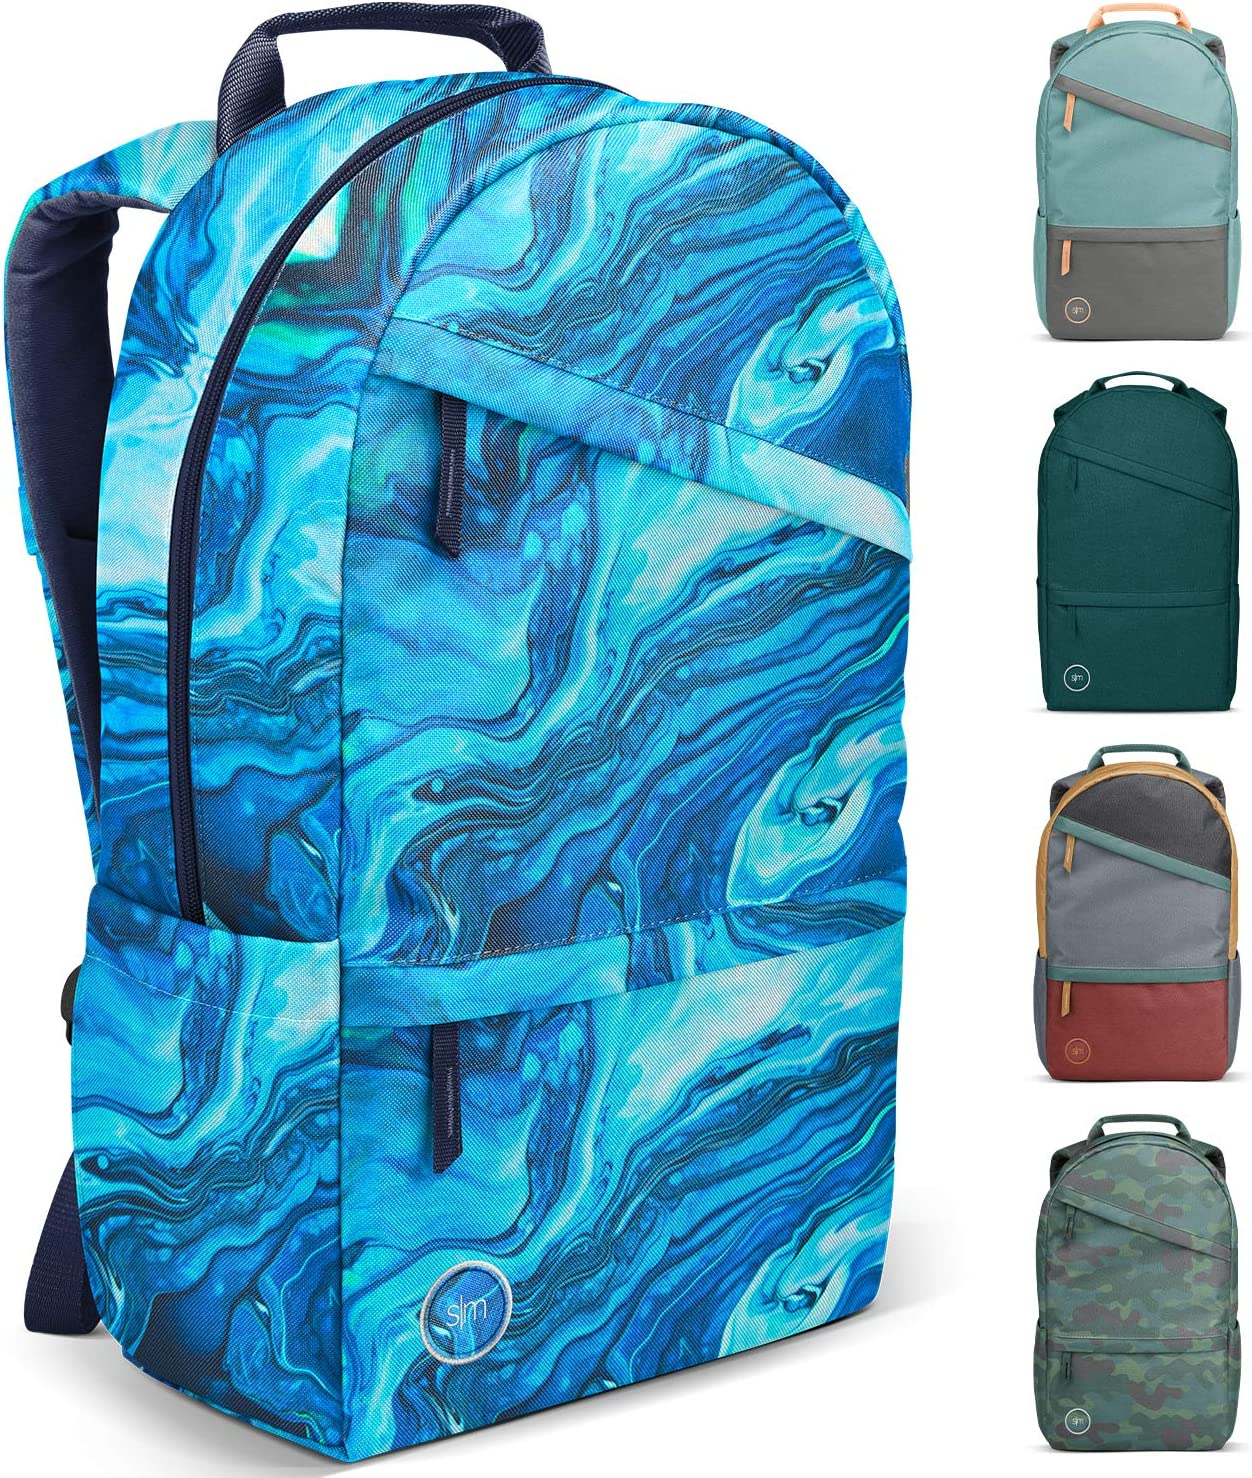 Simple Modern Legacy Backpack with Laptop Compartment, Ocean Geode, 25 Liter